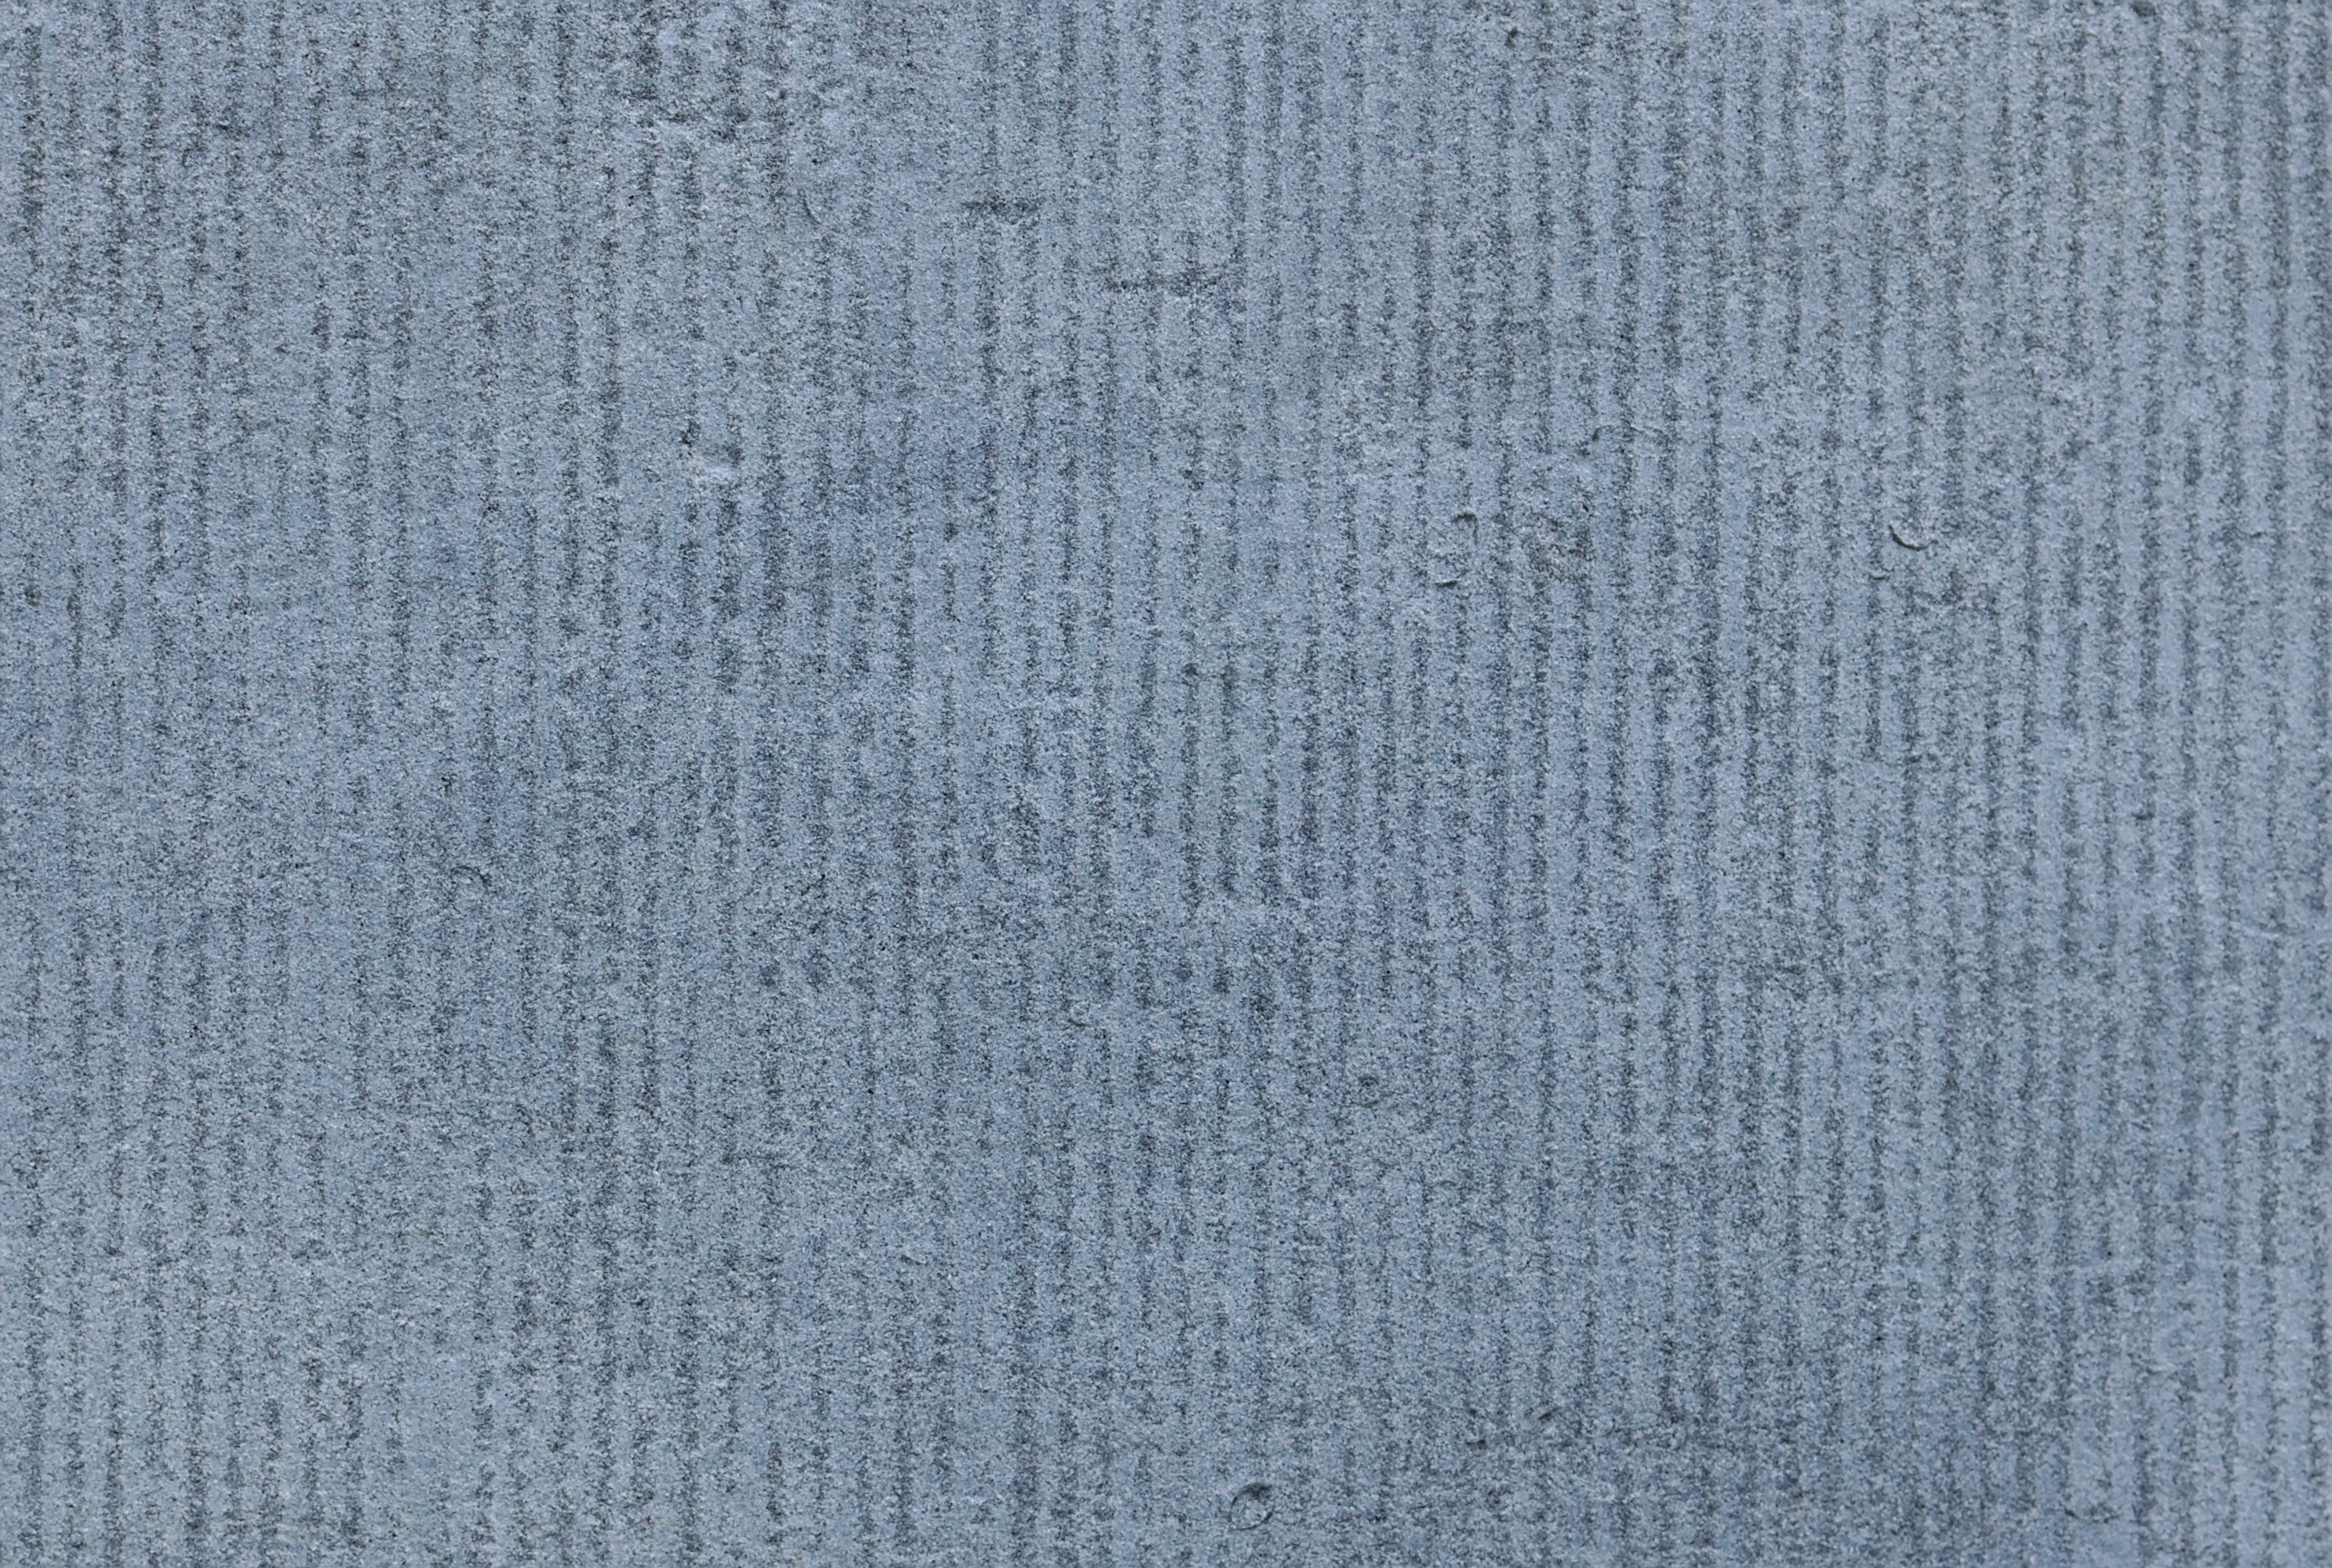 File:Blue stone texture with vertical stripes (01).jpg ...